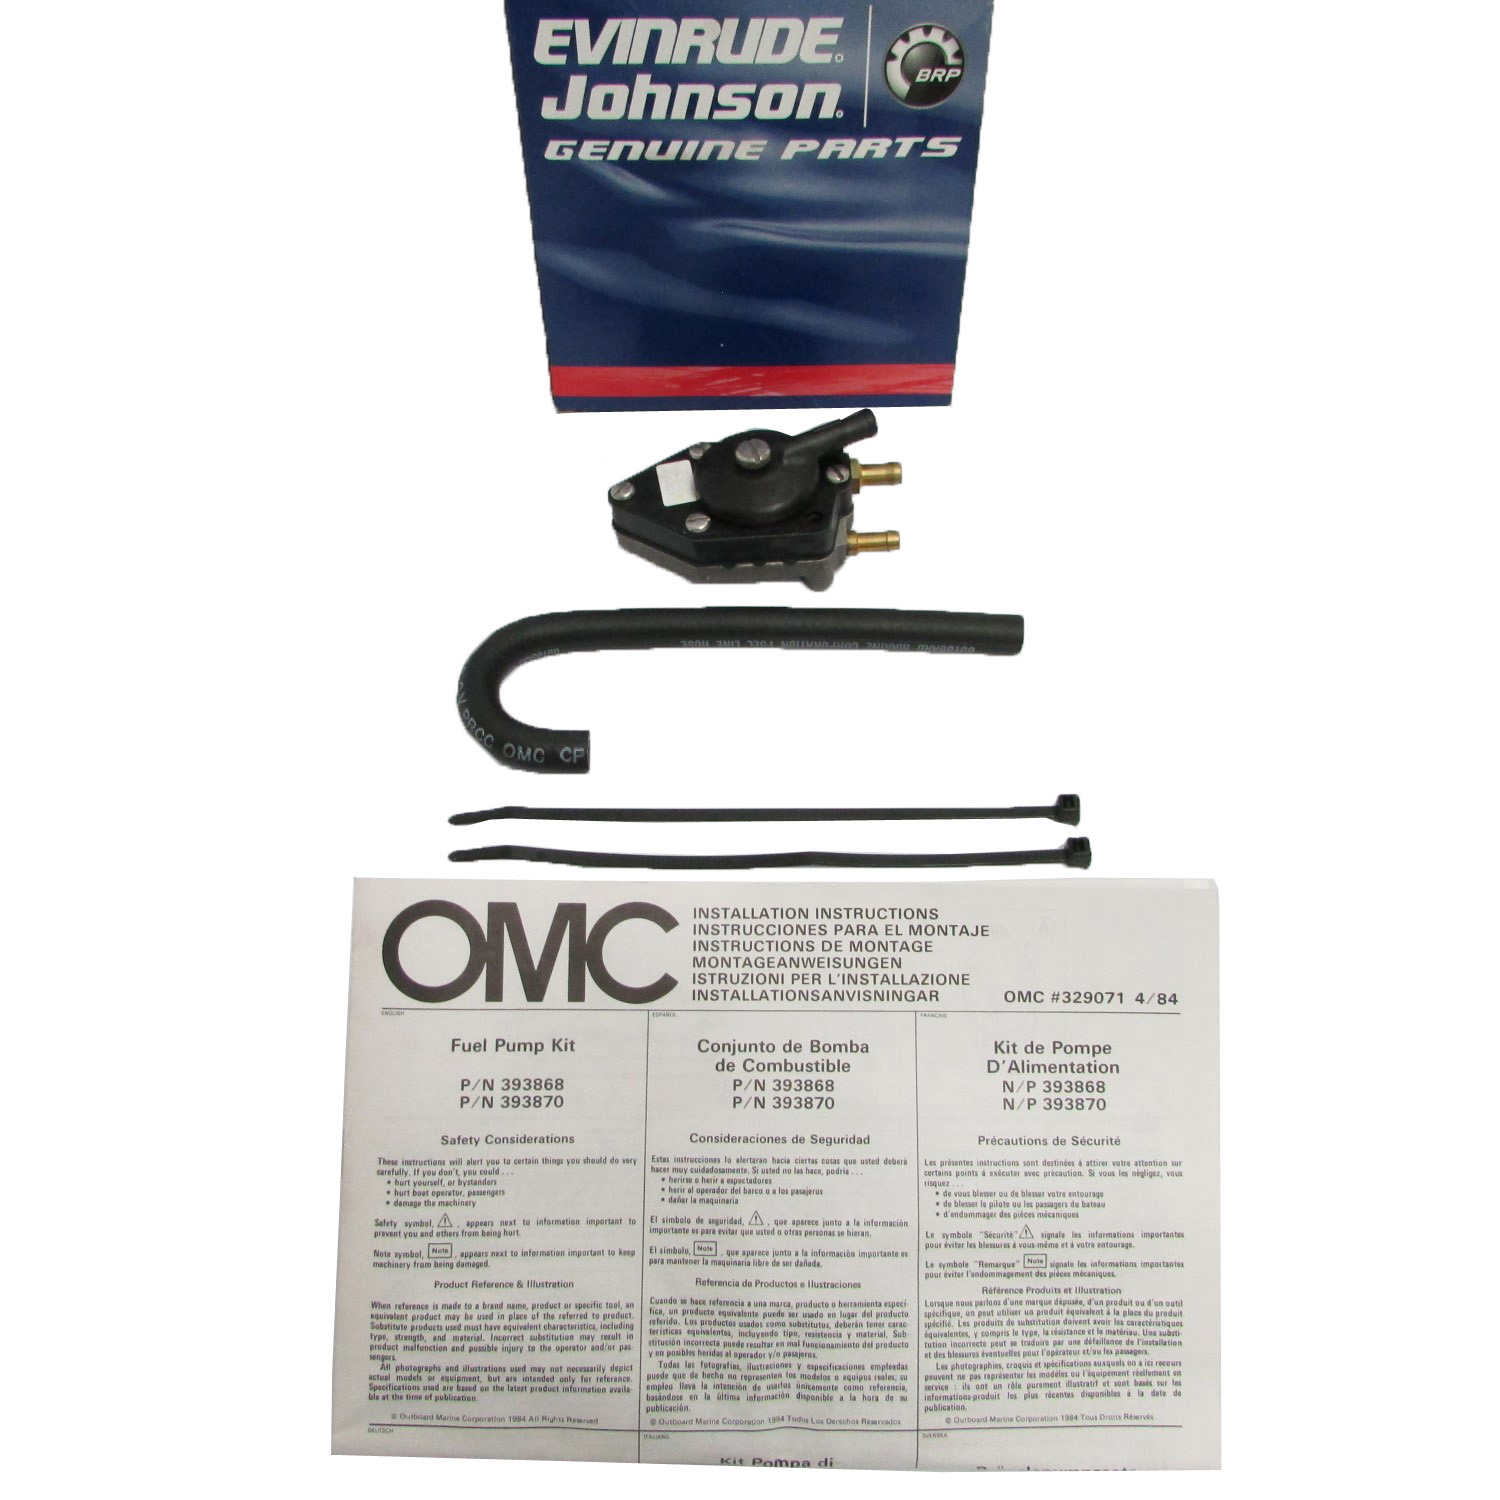 Omc Boat Inboard Intake And Fuel Systems Ebay 1978 Wiring Diagram Johnson Evinrude Pump Kit 0393870 393870